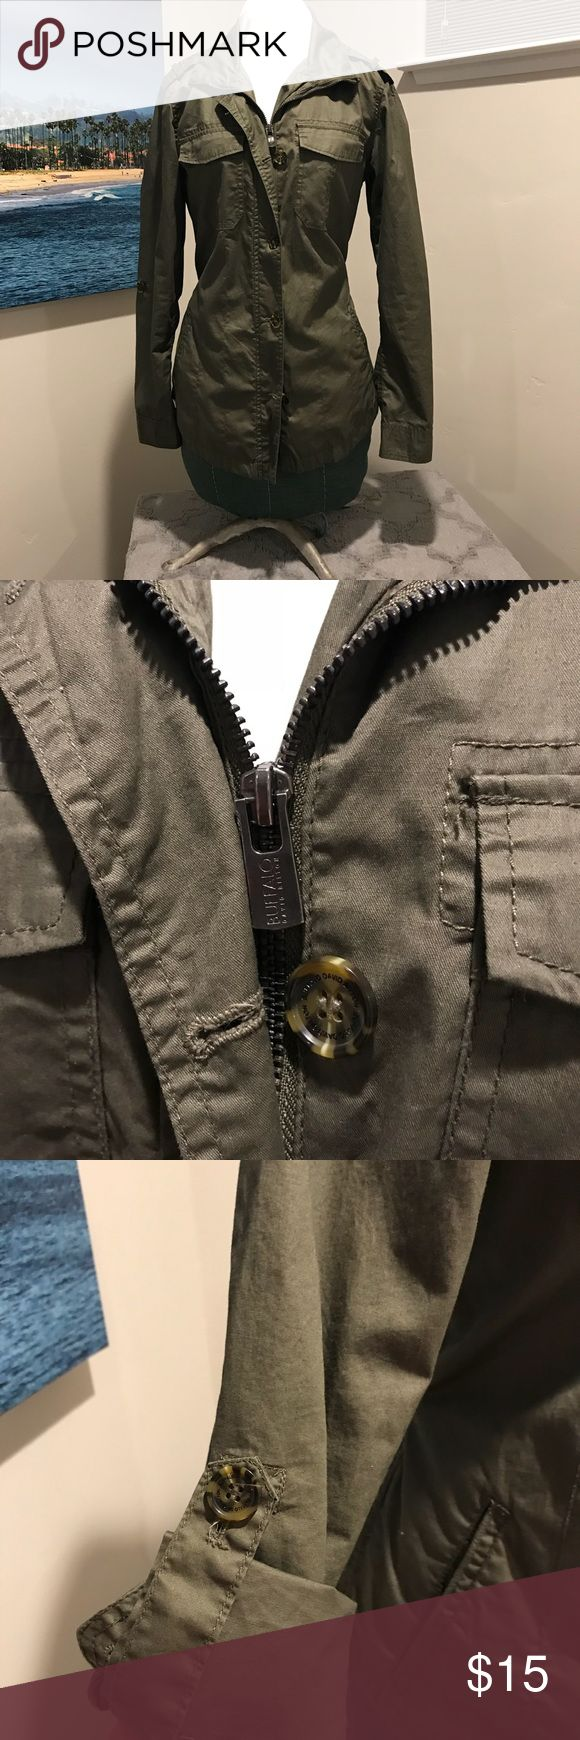 Small Buffalo Anorak jacket in olive green! Lightweight anorak jacket made by Buffalo. Sleeves can be rolled. Jacket has zipper and buttons and front along with pockets. Buffalo David Bitton Jackets & Coats